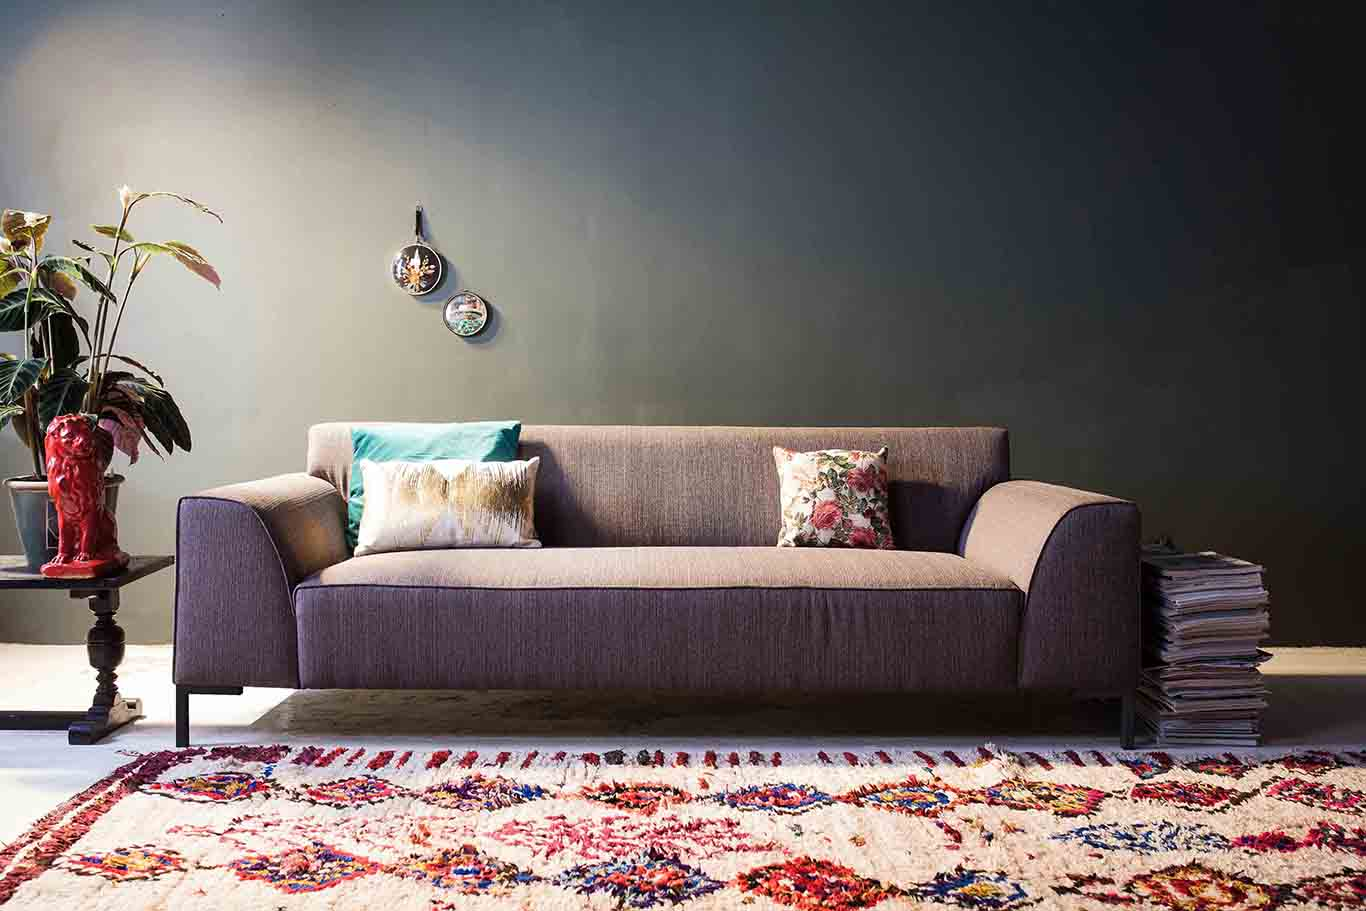 Interieur met bank van 4x6SOFA #interieur #zitbank #design #bank